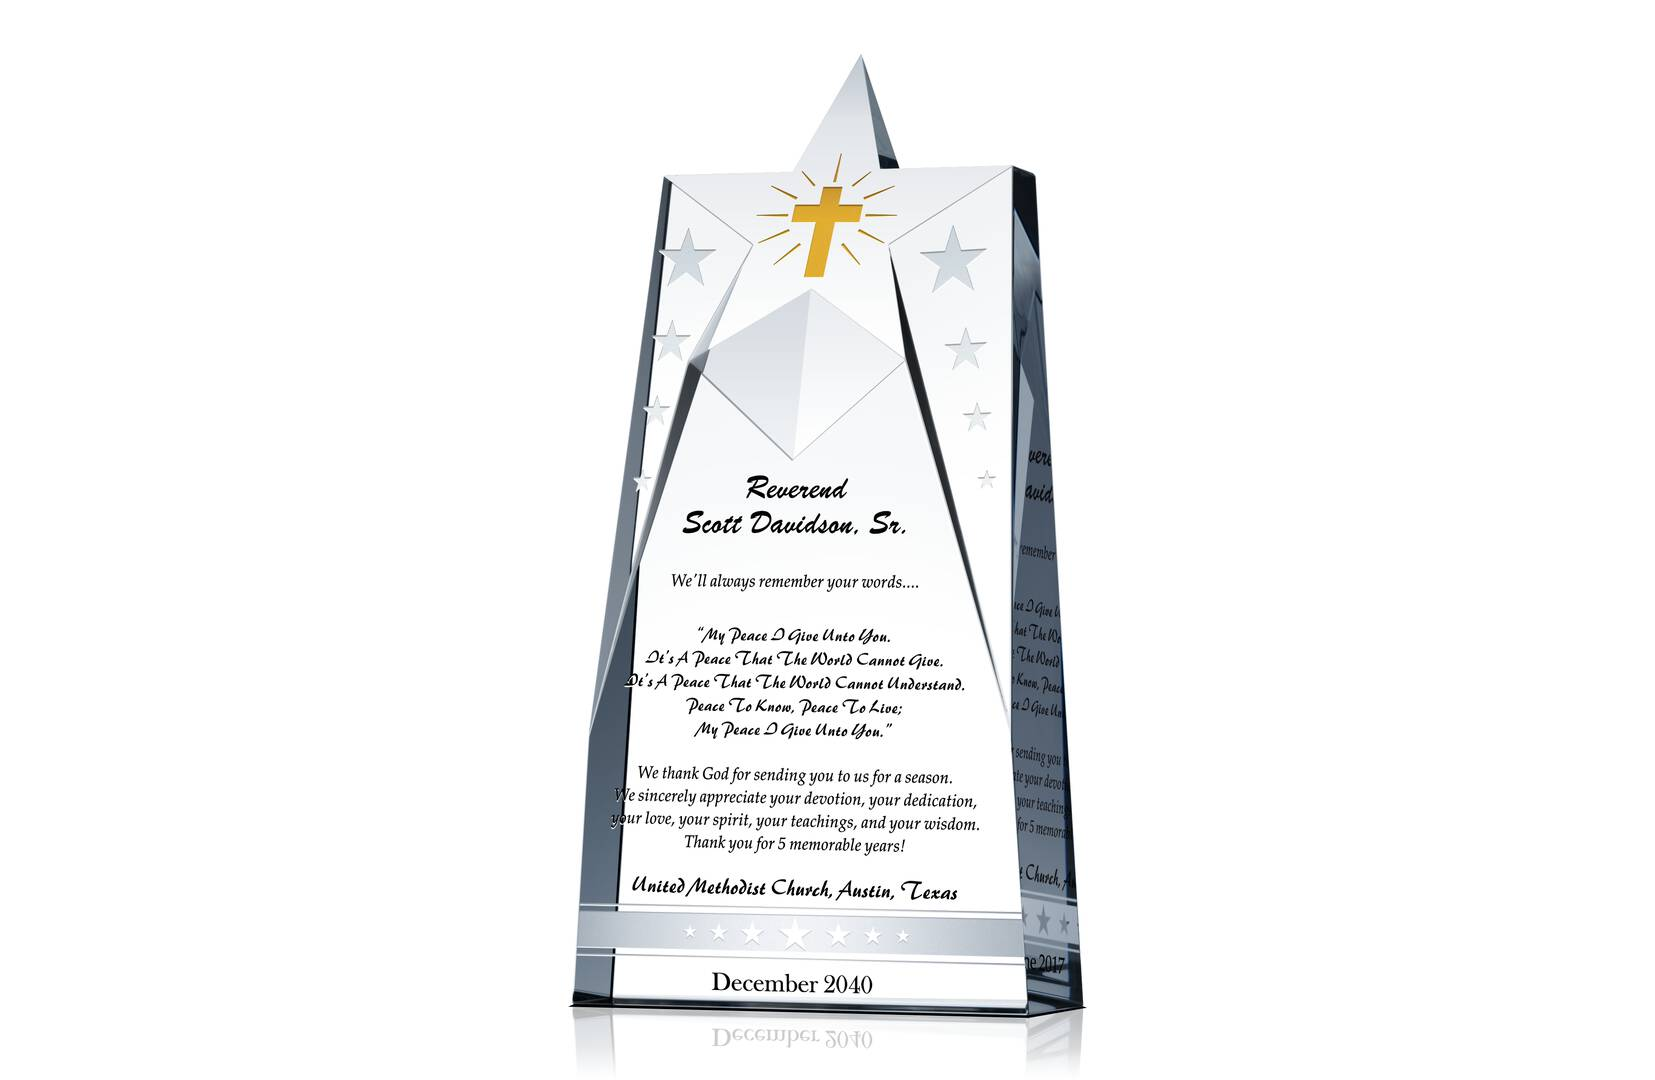 Star Pastor Appreciation Gift Plaques